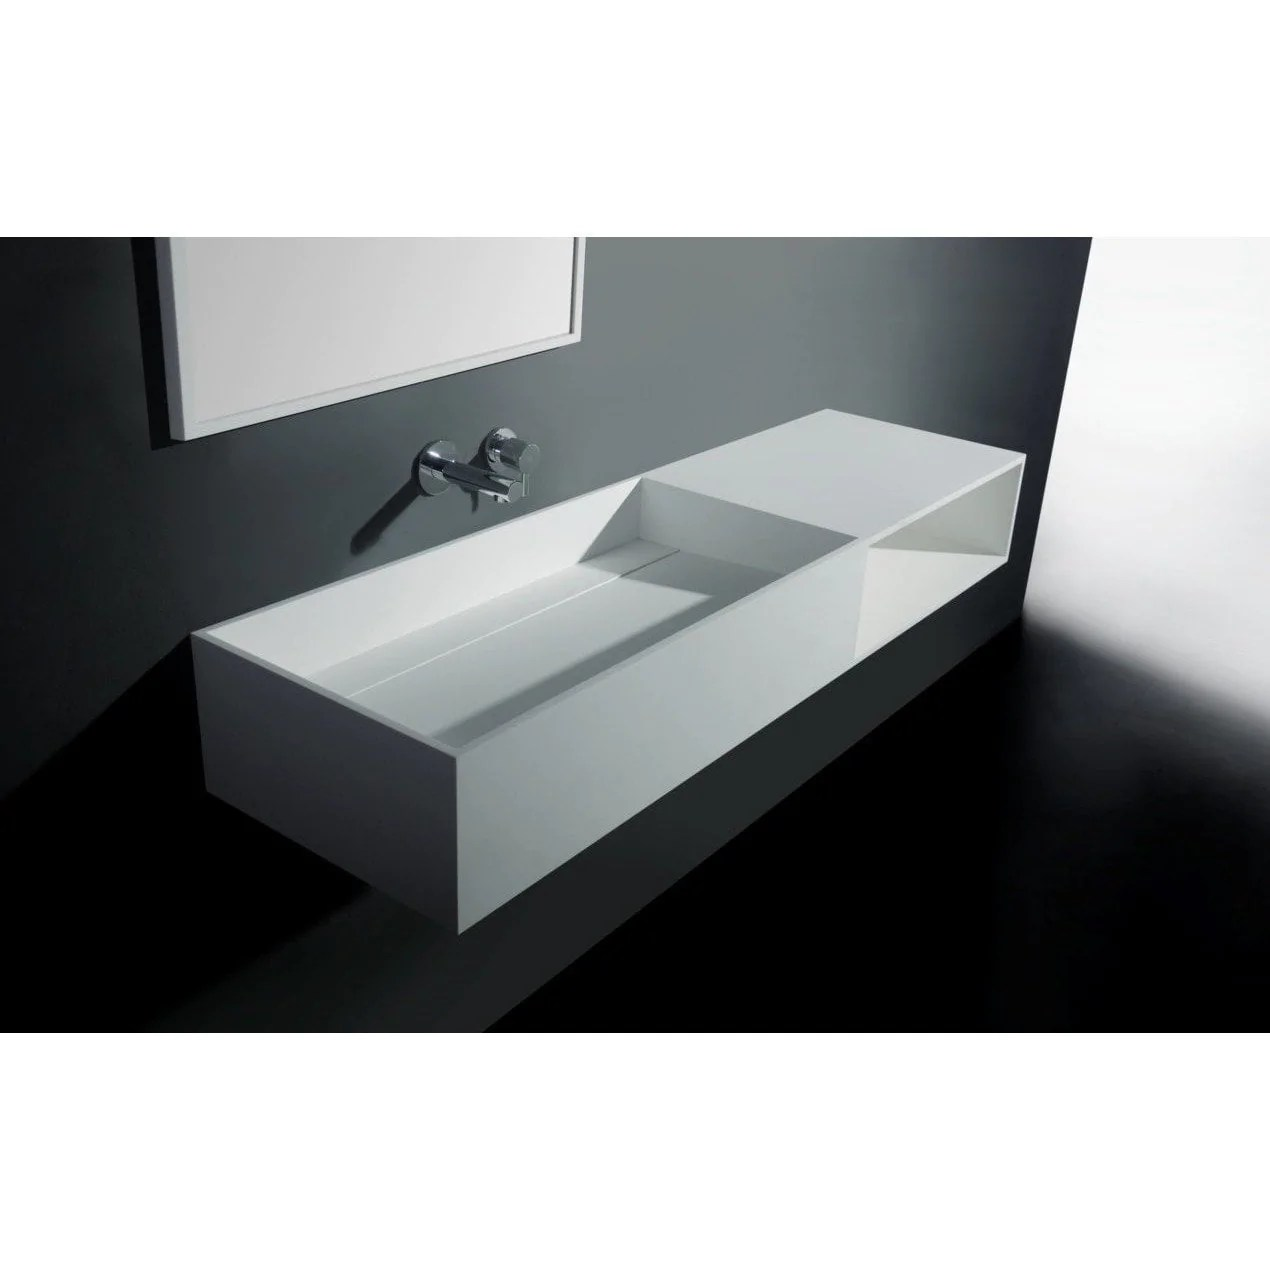 solidpure 55 in wall mounted single sink bathroom vanity with one shelf white solid surface